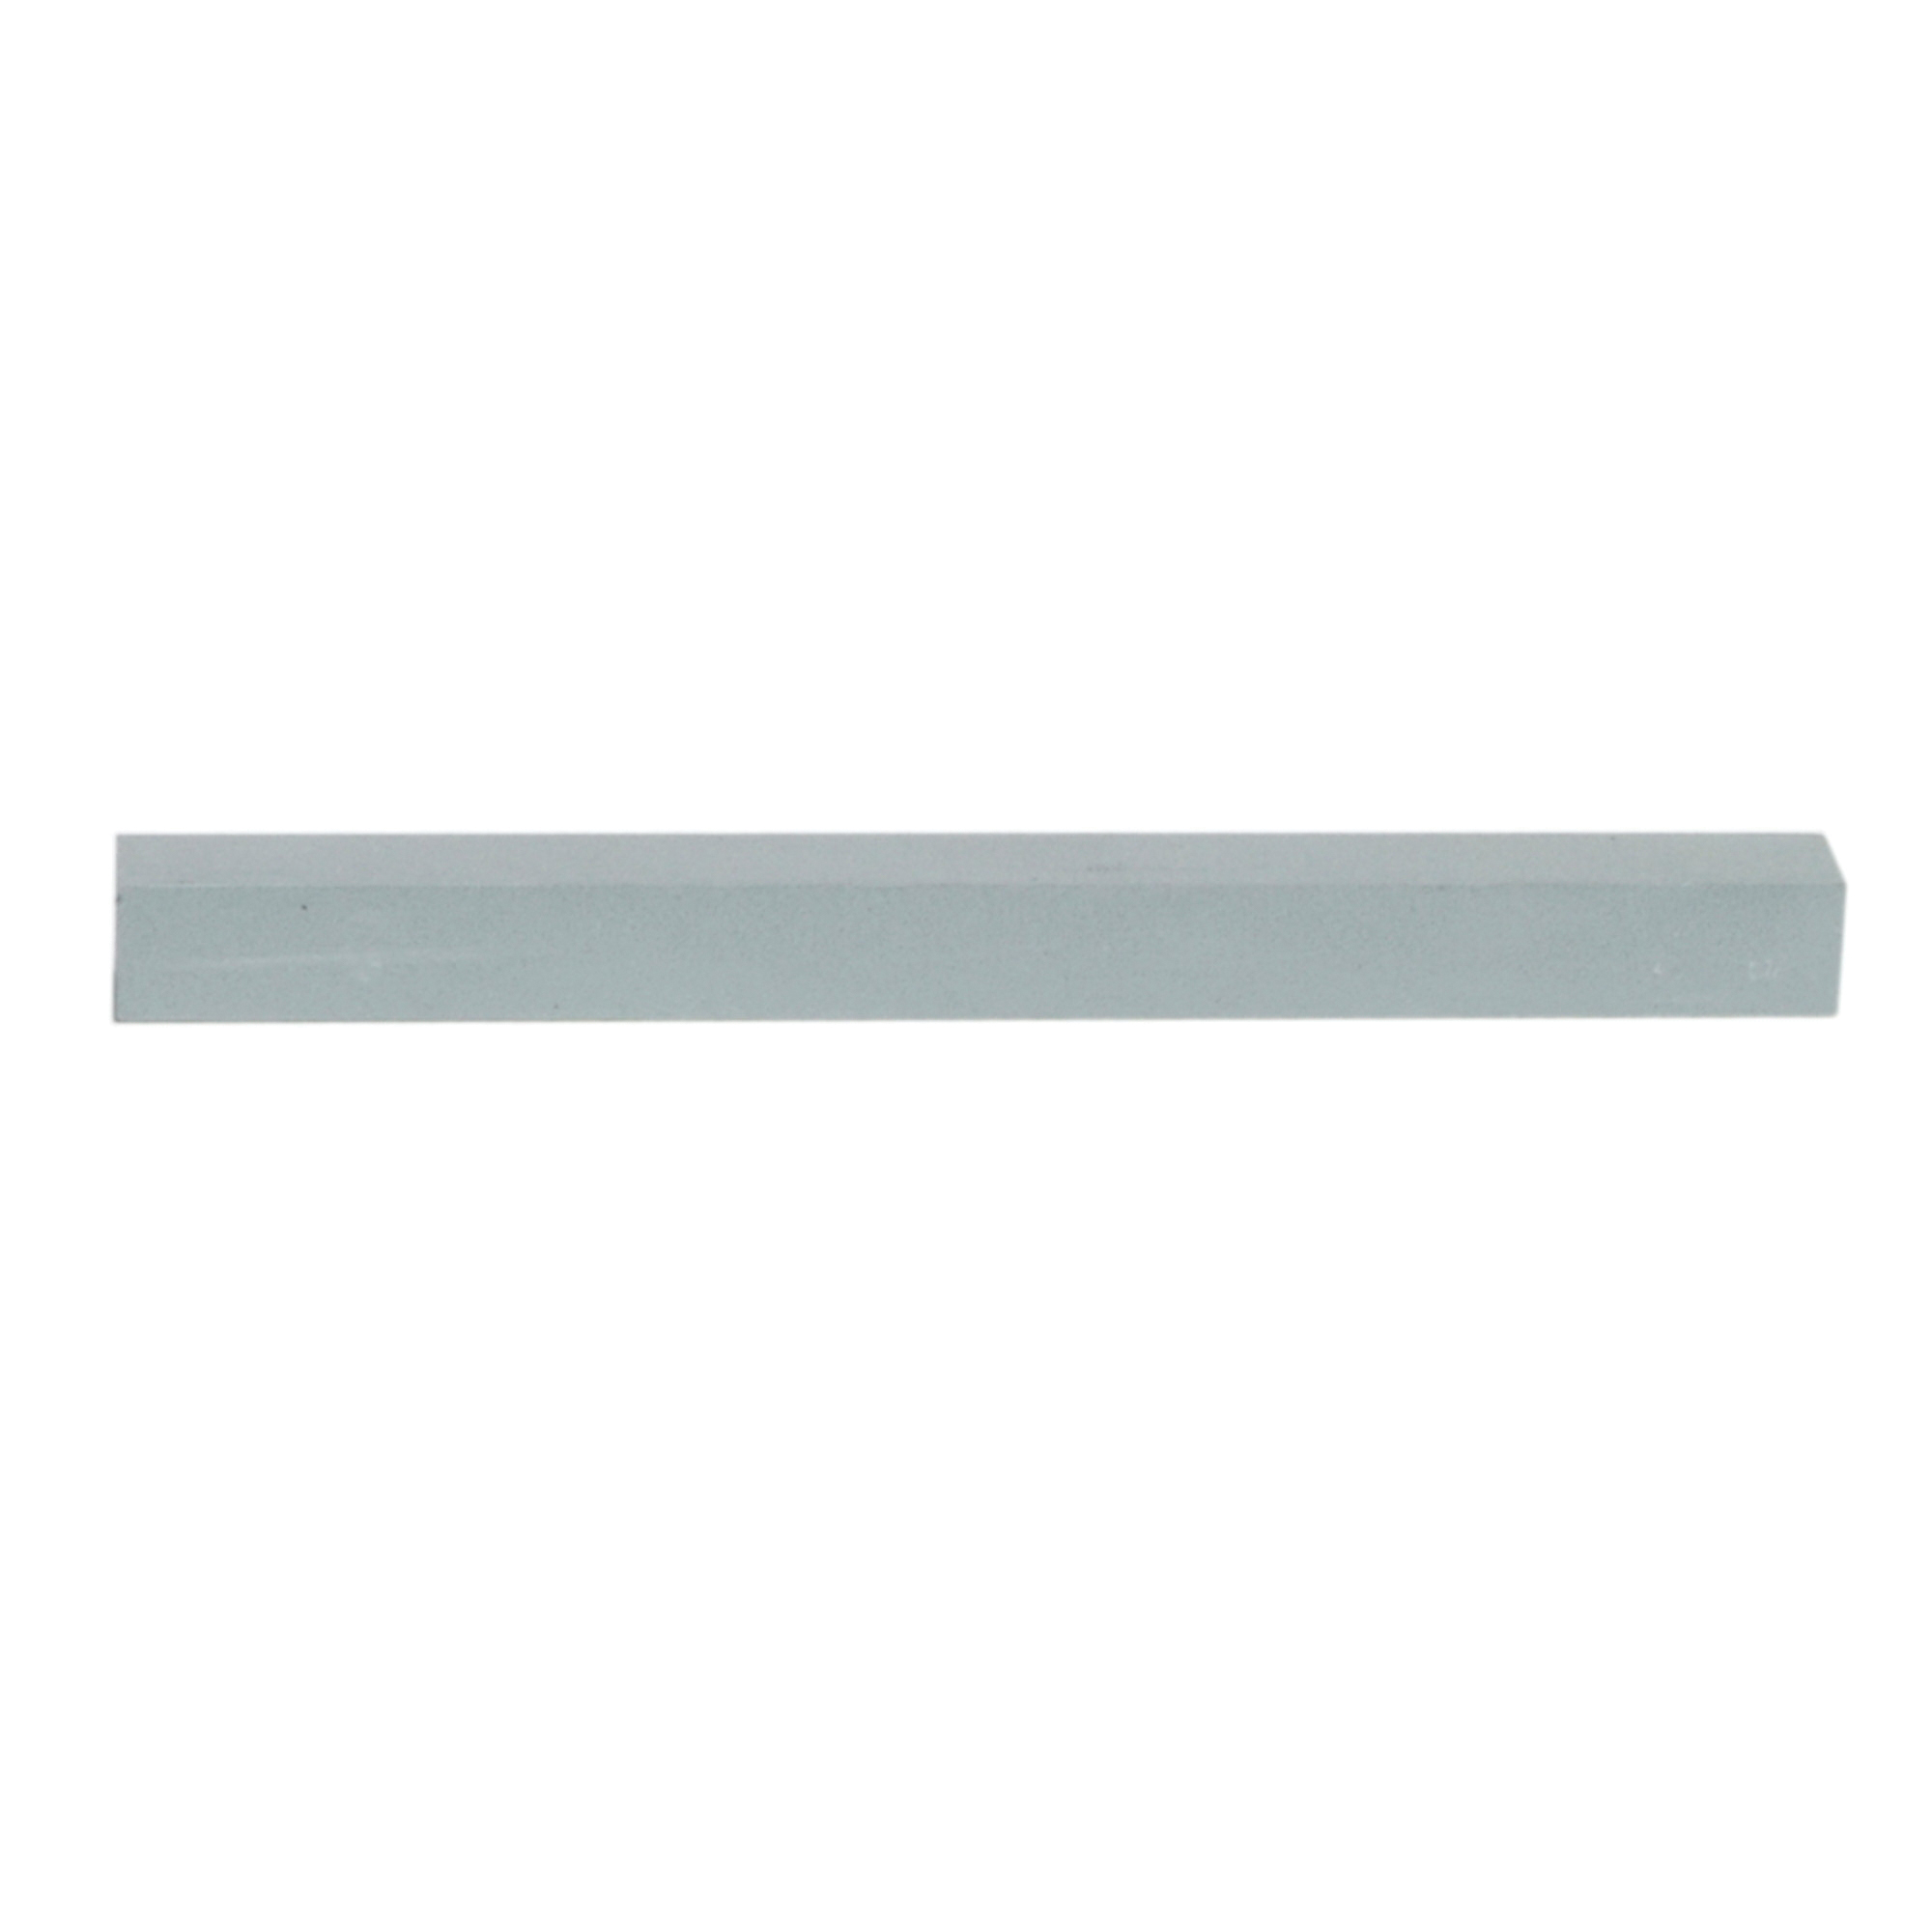 Norton® 61463650324 NMVC Dressing Stick, Squared Shape, 6 in L x 1/2 in W x 1/2 in THK